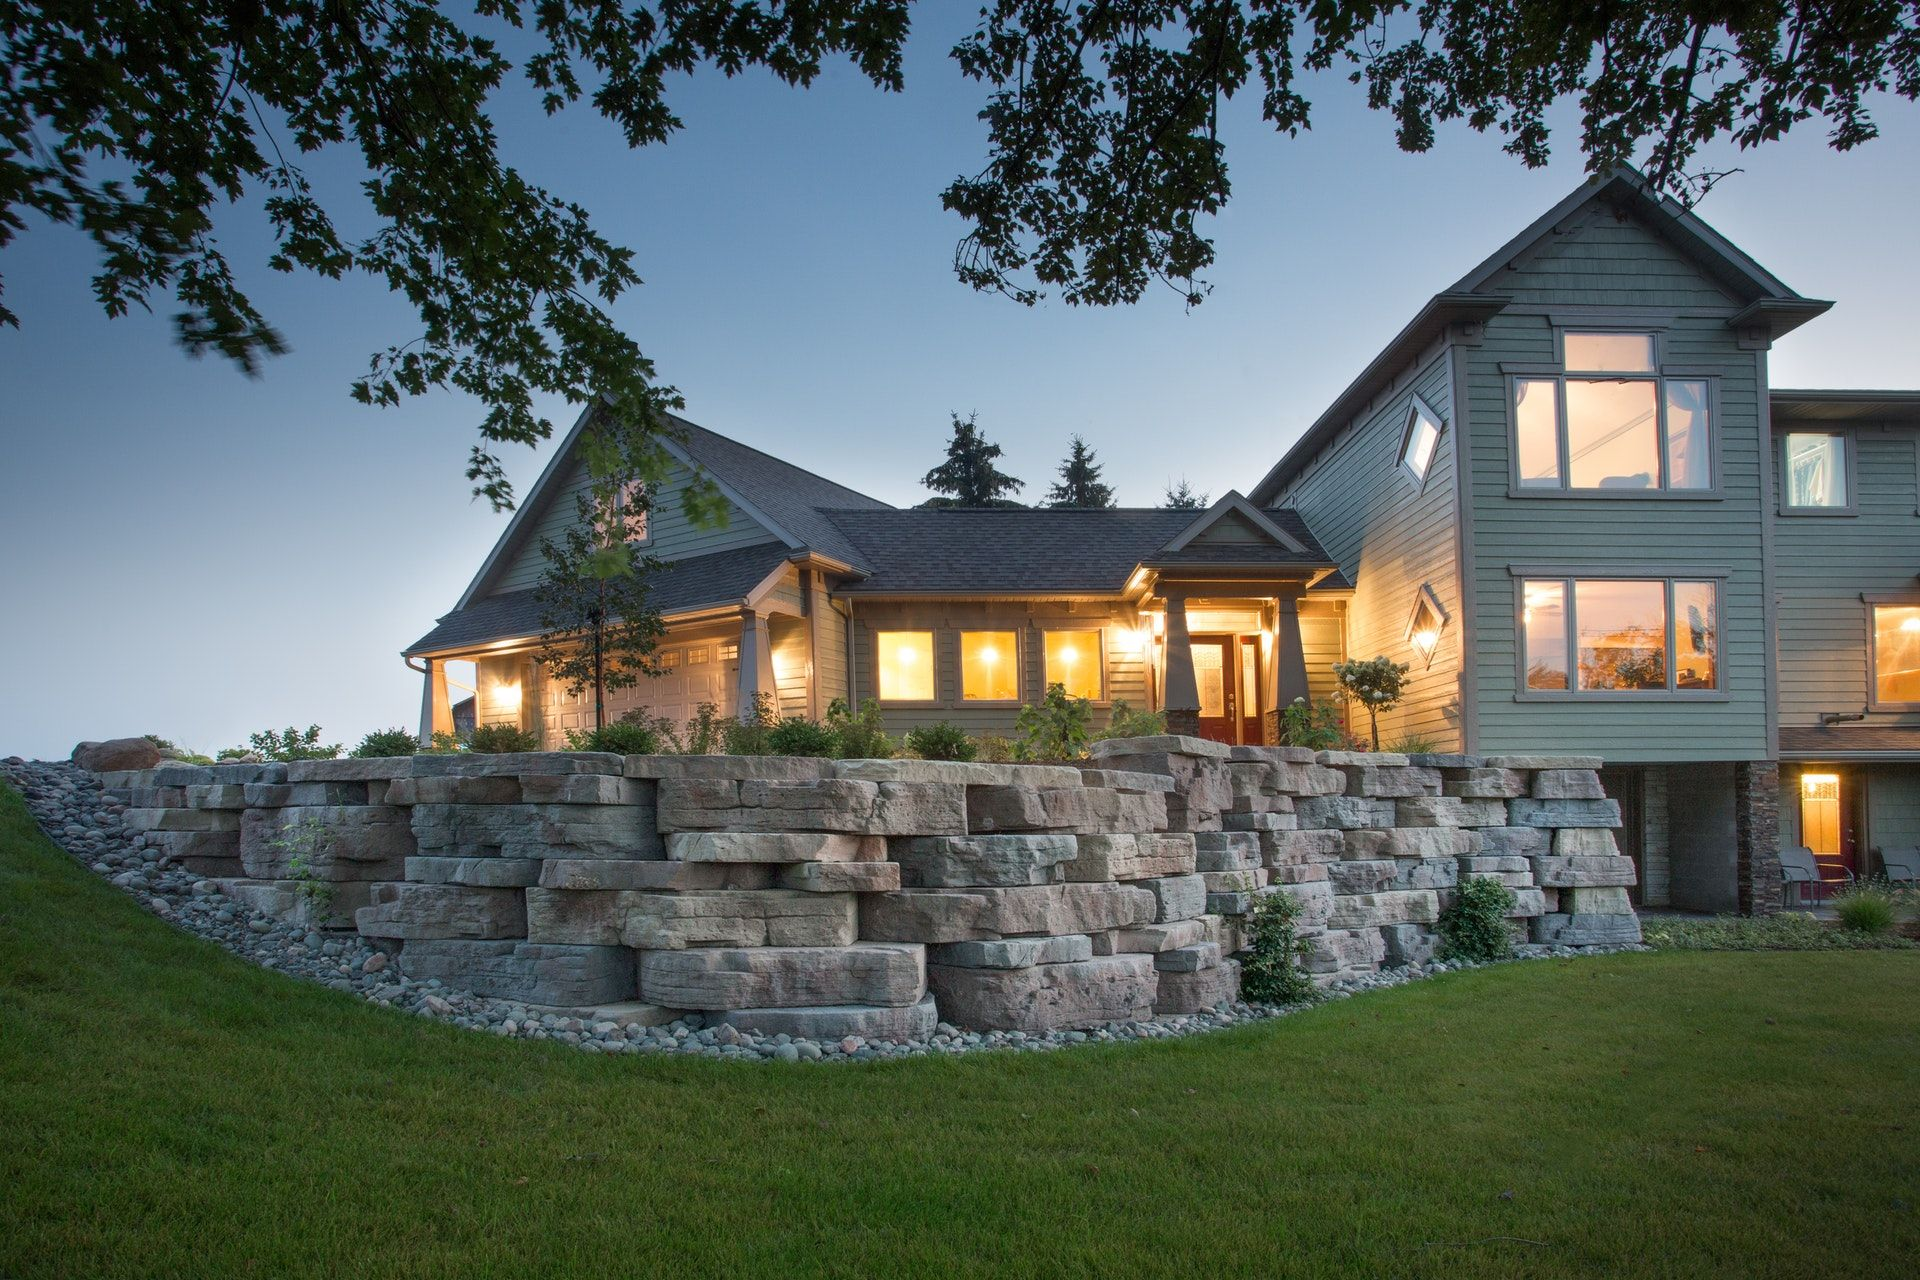 Landscaping Ideas with Outcropping Collection by Rosetta ... on Rock And Stone Outdoor Living id=35651